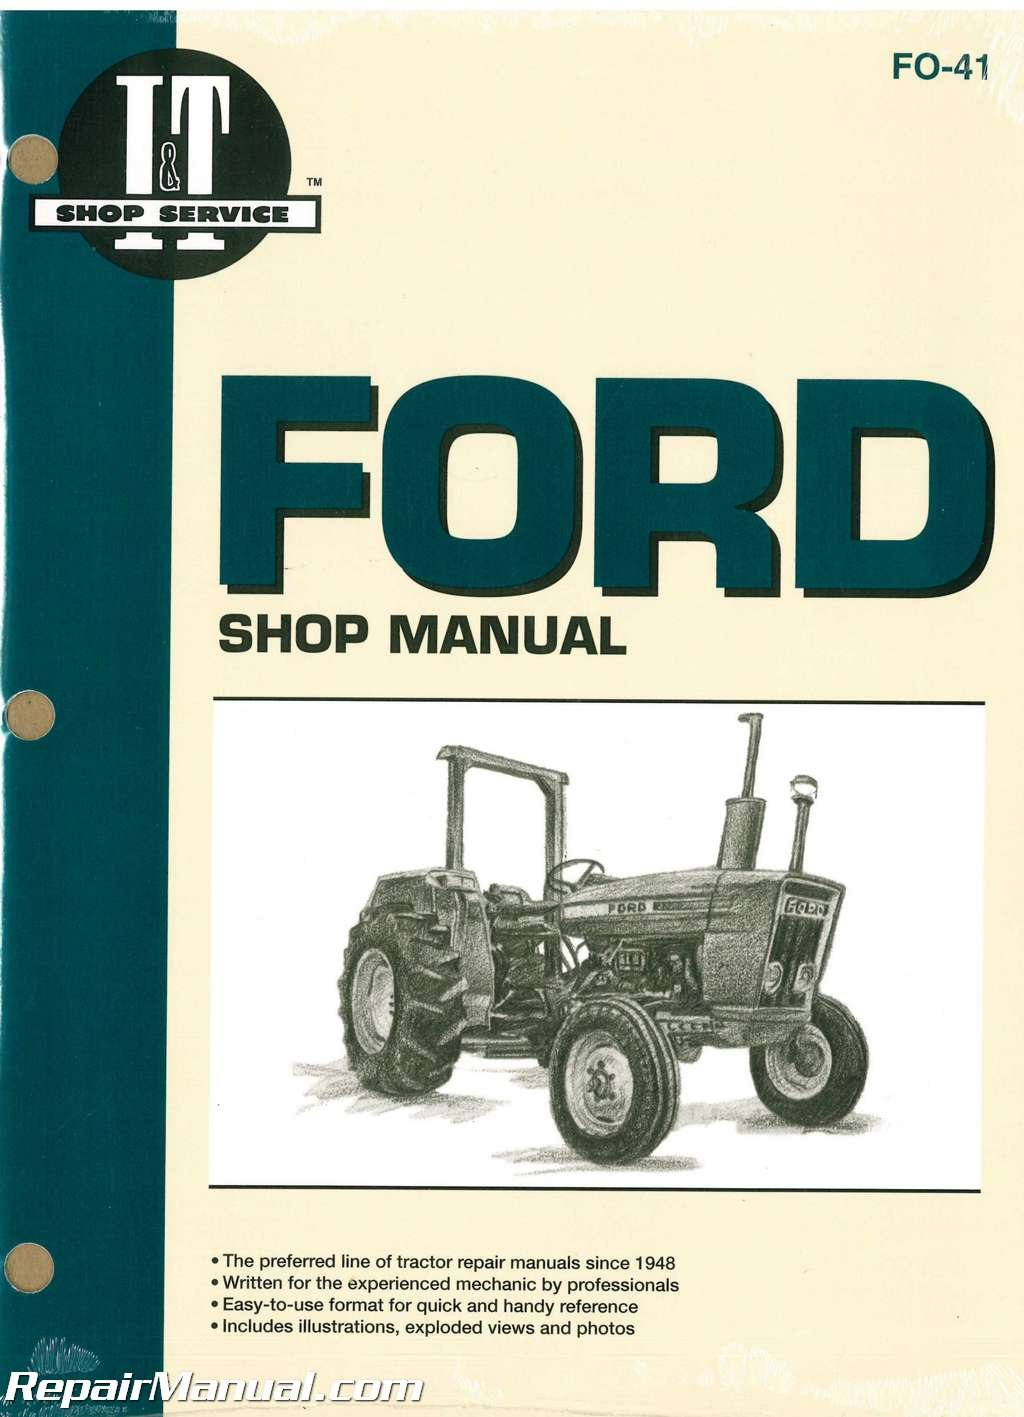 FO-41 Ford New Holland 2310 2600 2610 3600 3610 4100 After 1974 4110 4600  4610 Prior To 1984 4600SU 4610SU Prior To 1984 Tractor Manual:  Manufacturer: ...